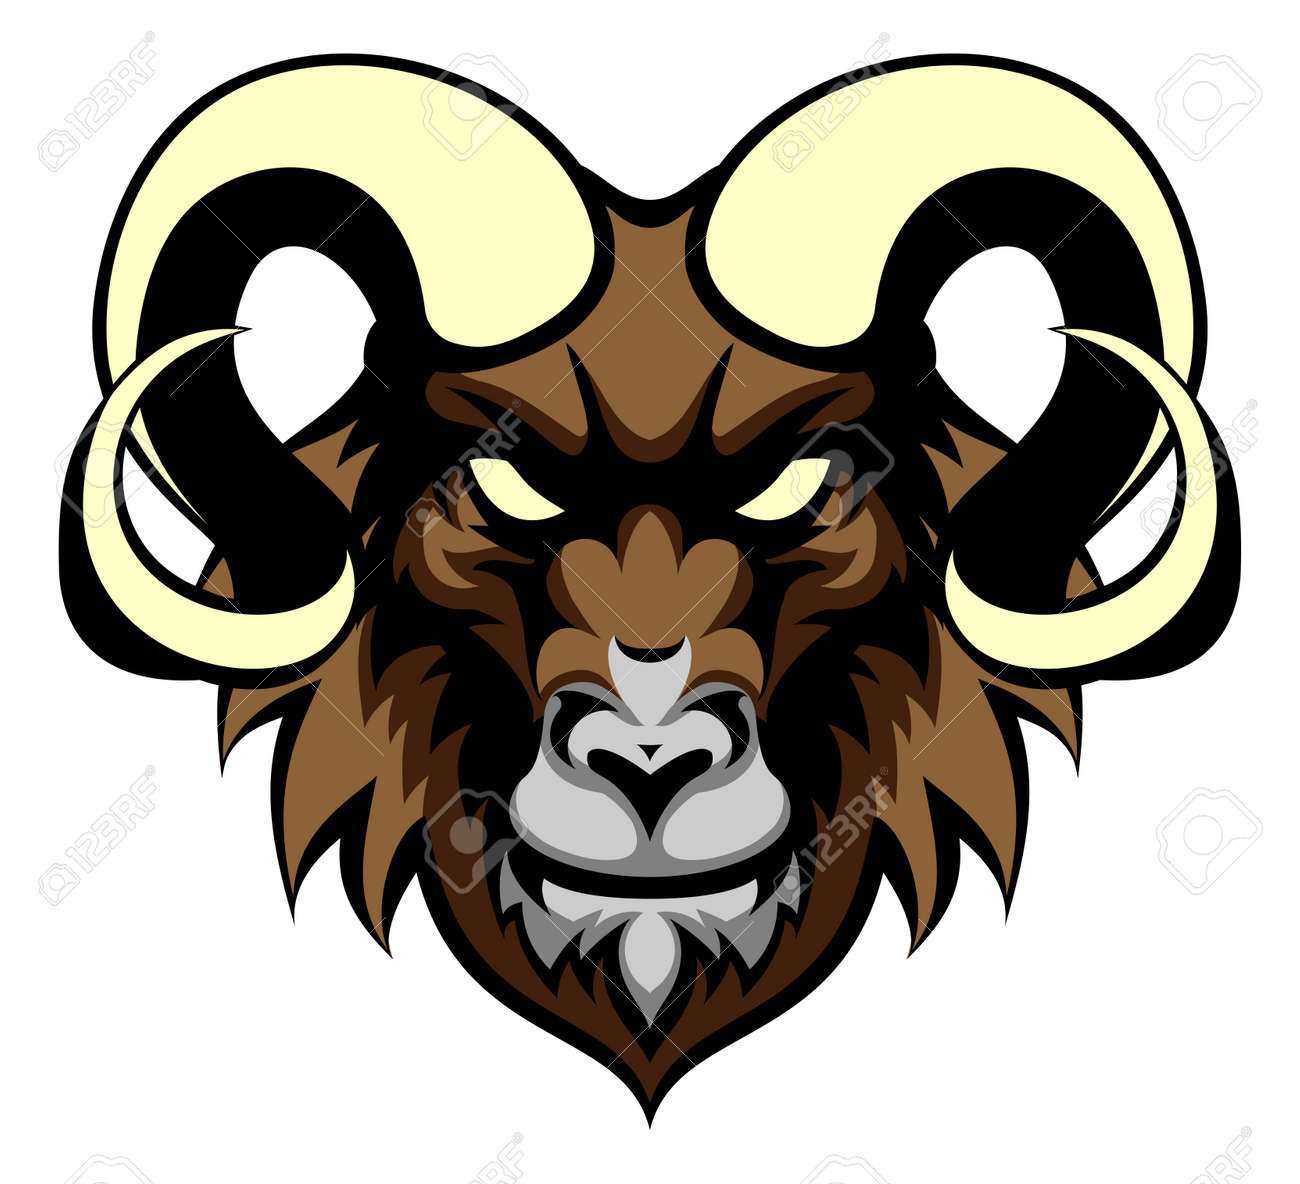 an illustration of a ram animal mean sports mascot head royalty free